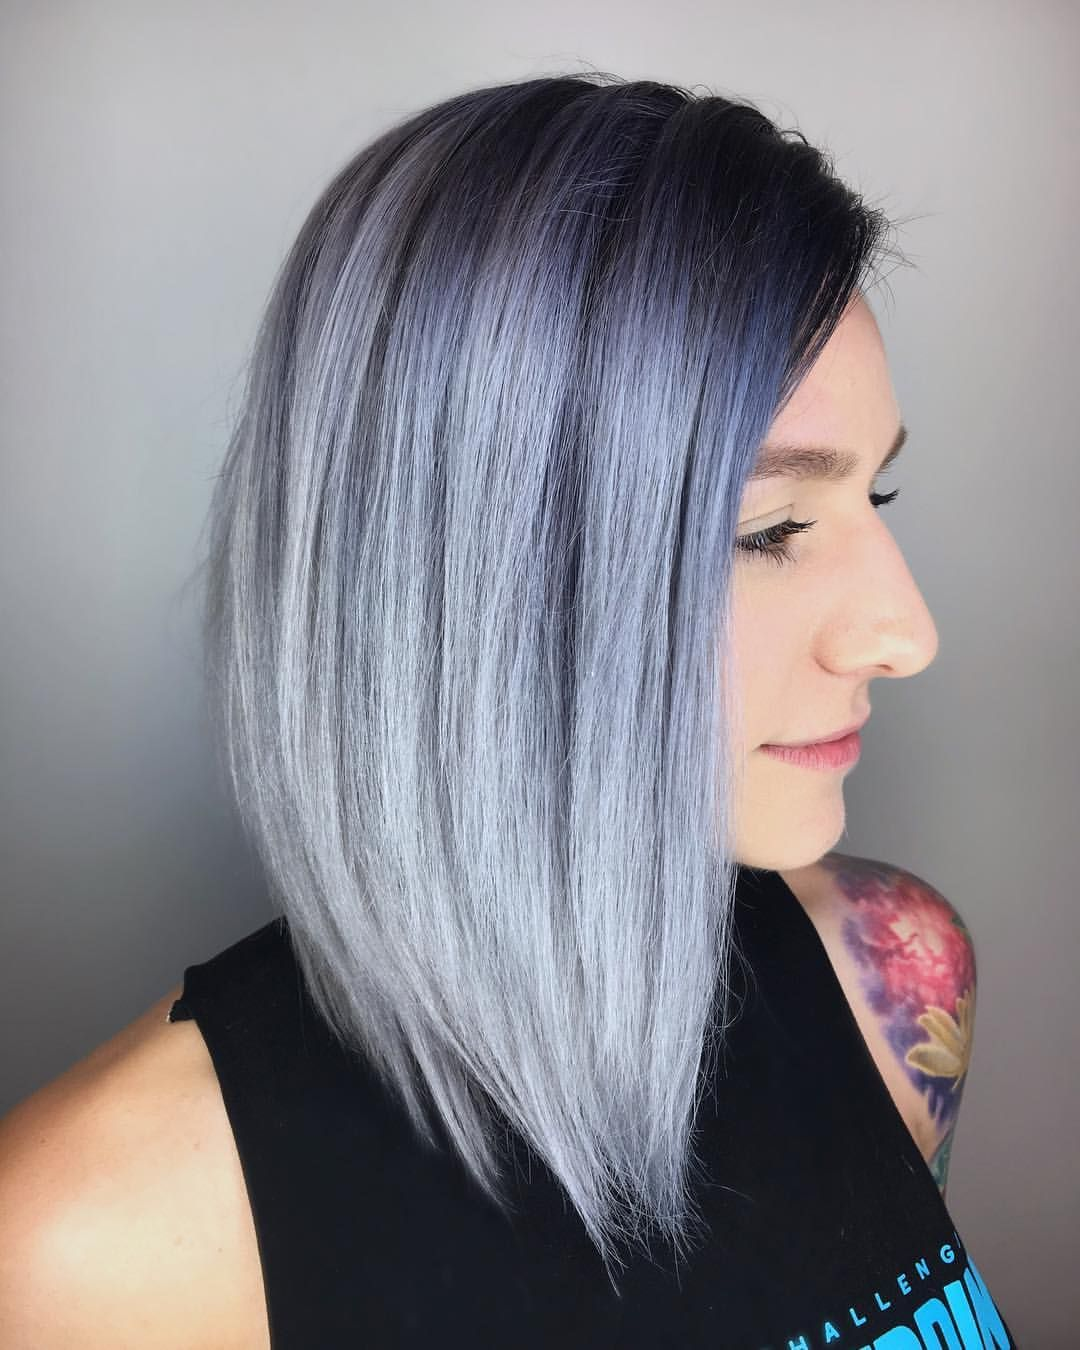 266 Likes 21 Comments Seattle Wa Stylist Keri S Hairlizard On Instagram Midnight Ice Refreshed This B Hair Stylist Color Melting Platinum Color